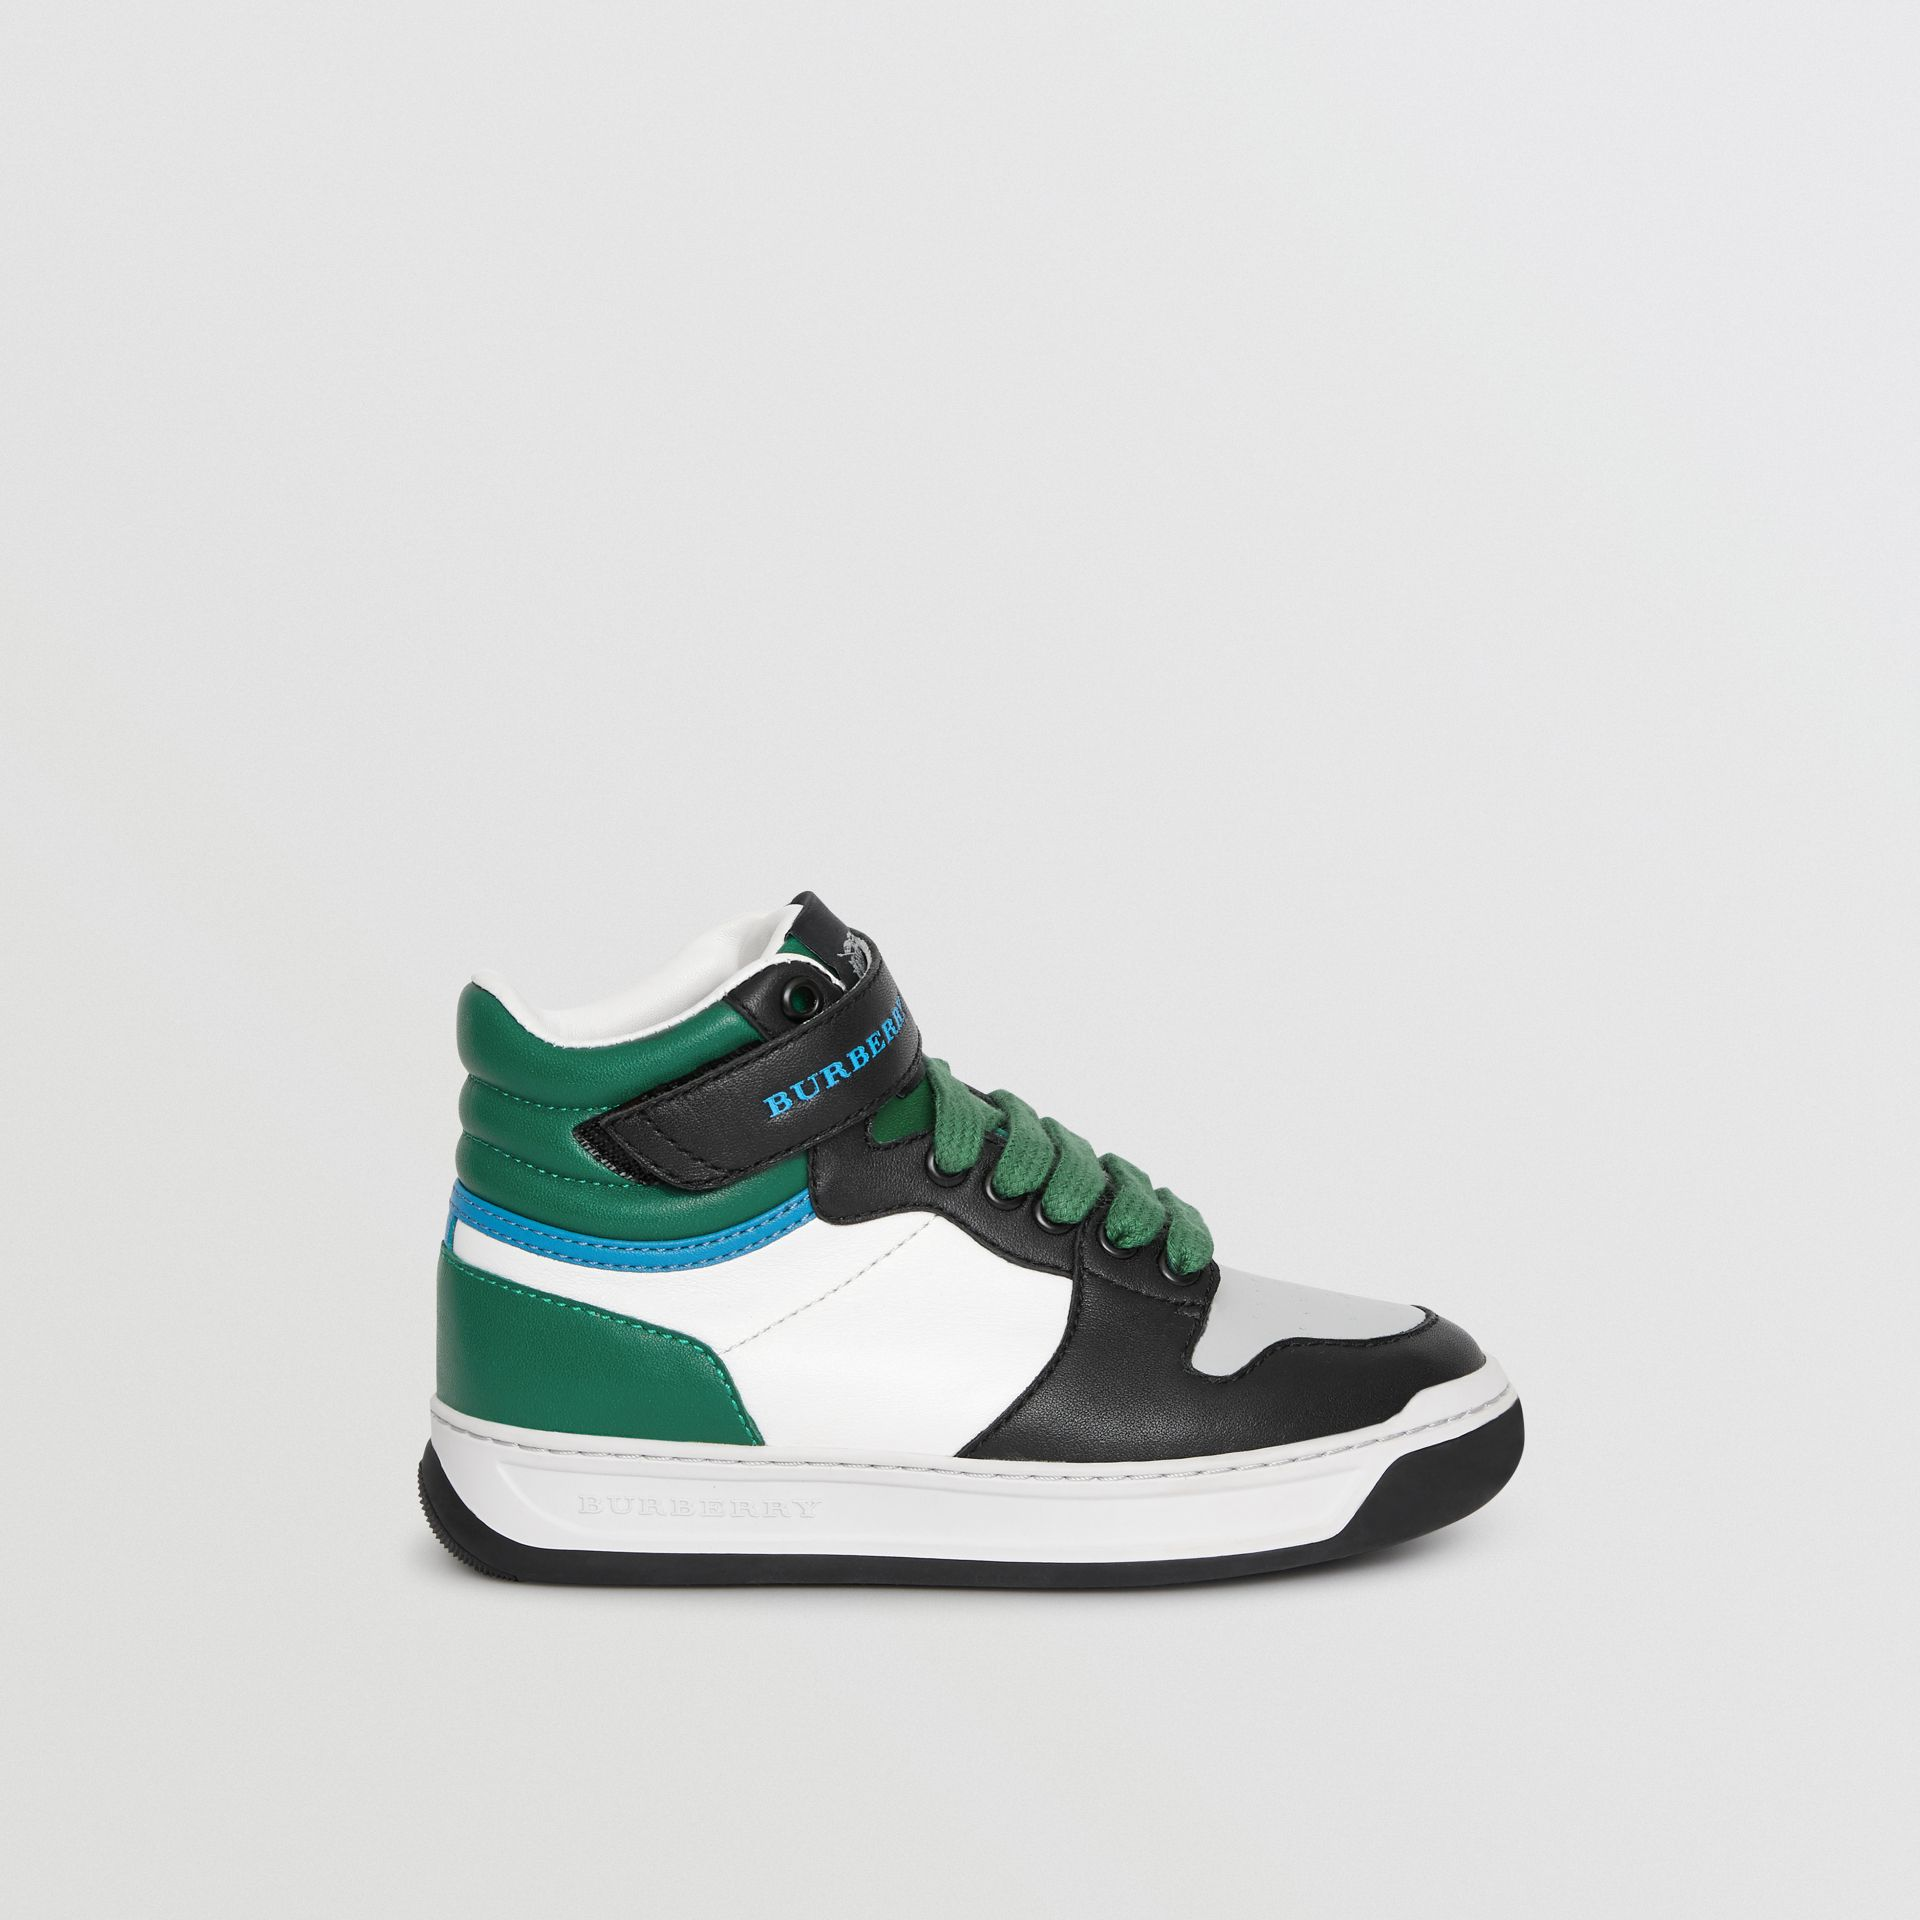 Colour Block Leather High-top Sneakers in Viridian Green - Children | Burberry - gallery image 3